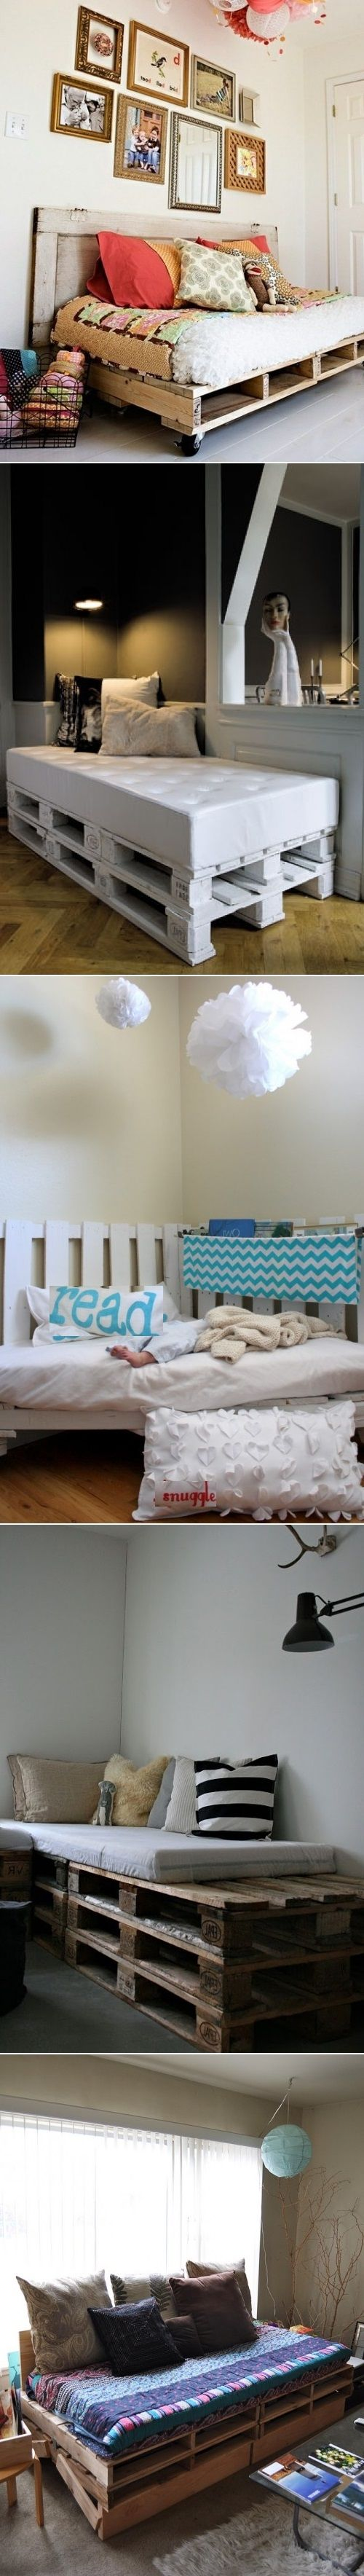 DIY Daybeds Of Pallets